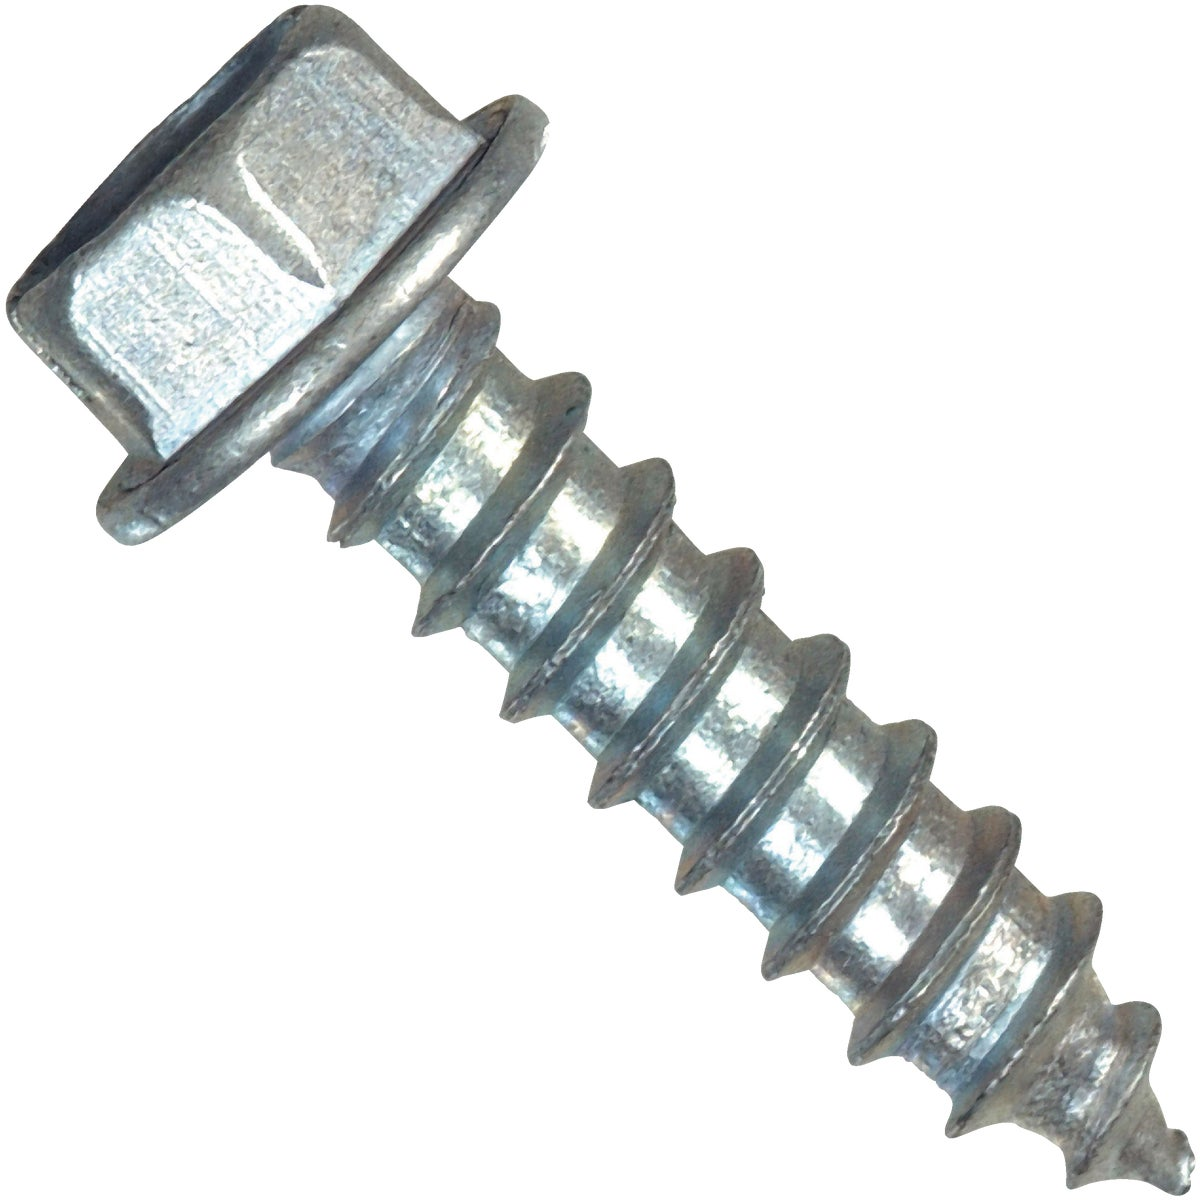 8X1 HWH SHT MTL SCREW - 70280 by Hillman Fastener